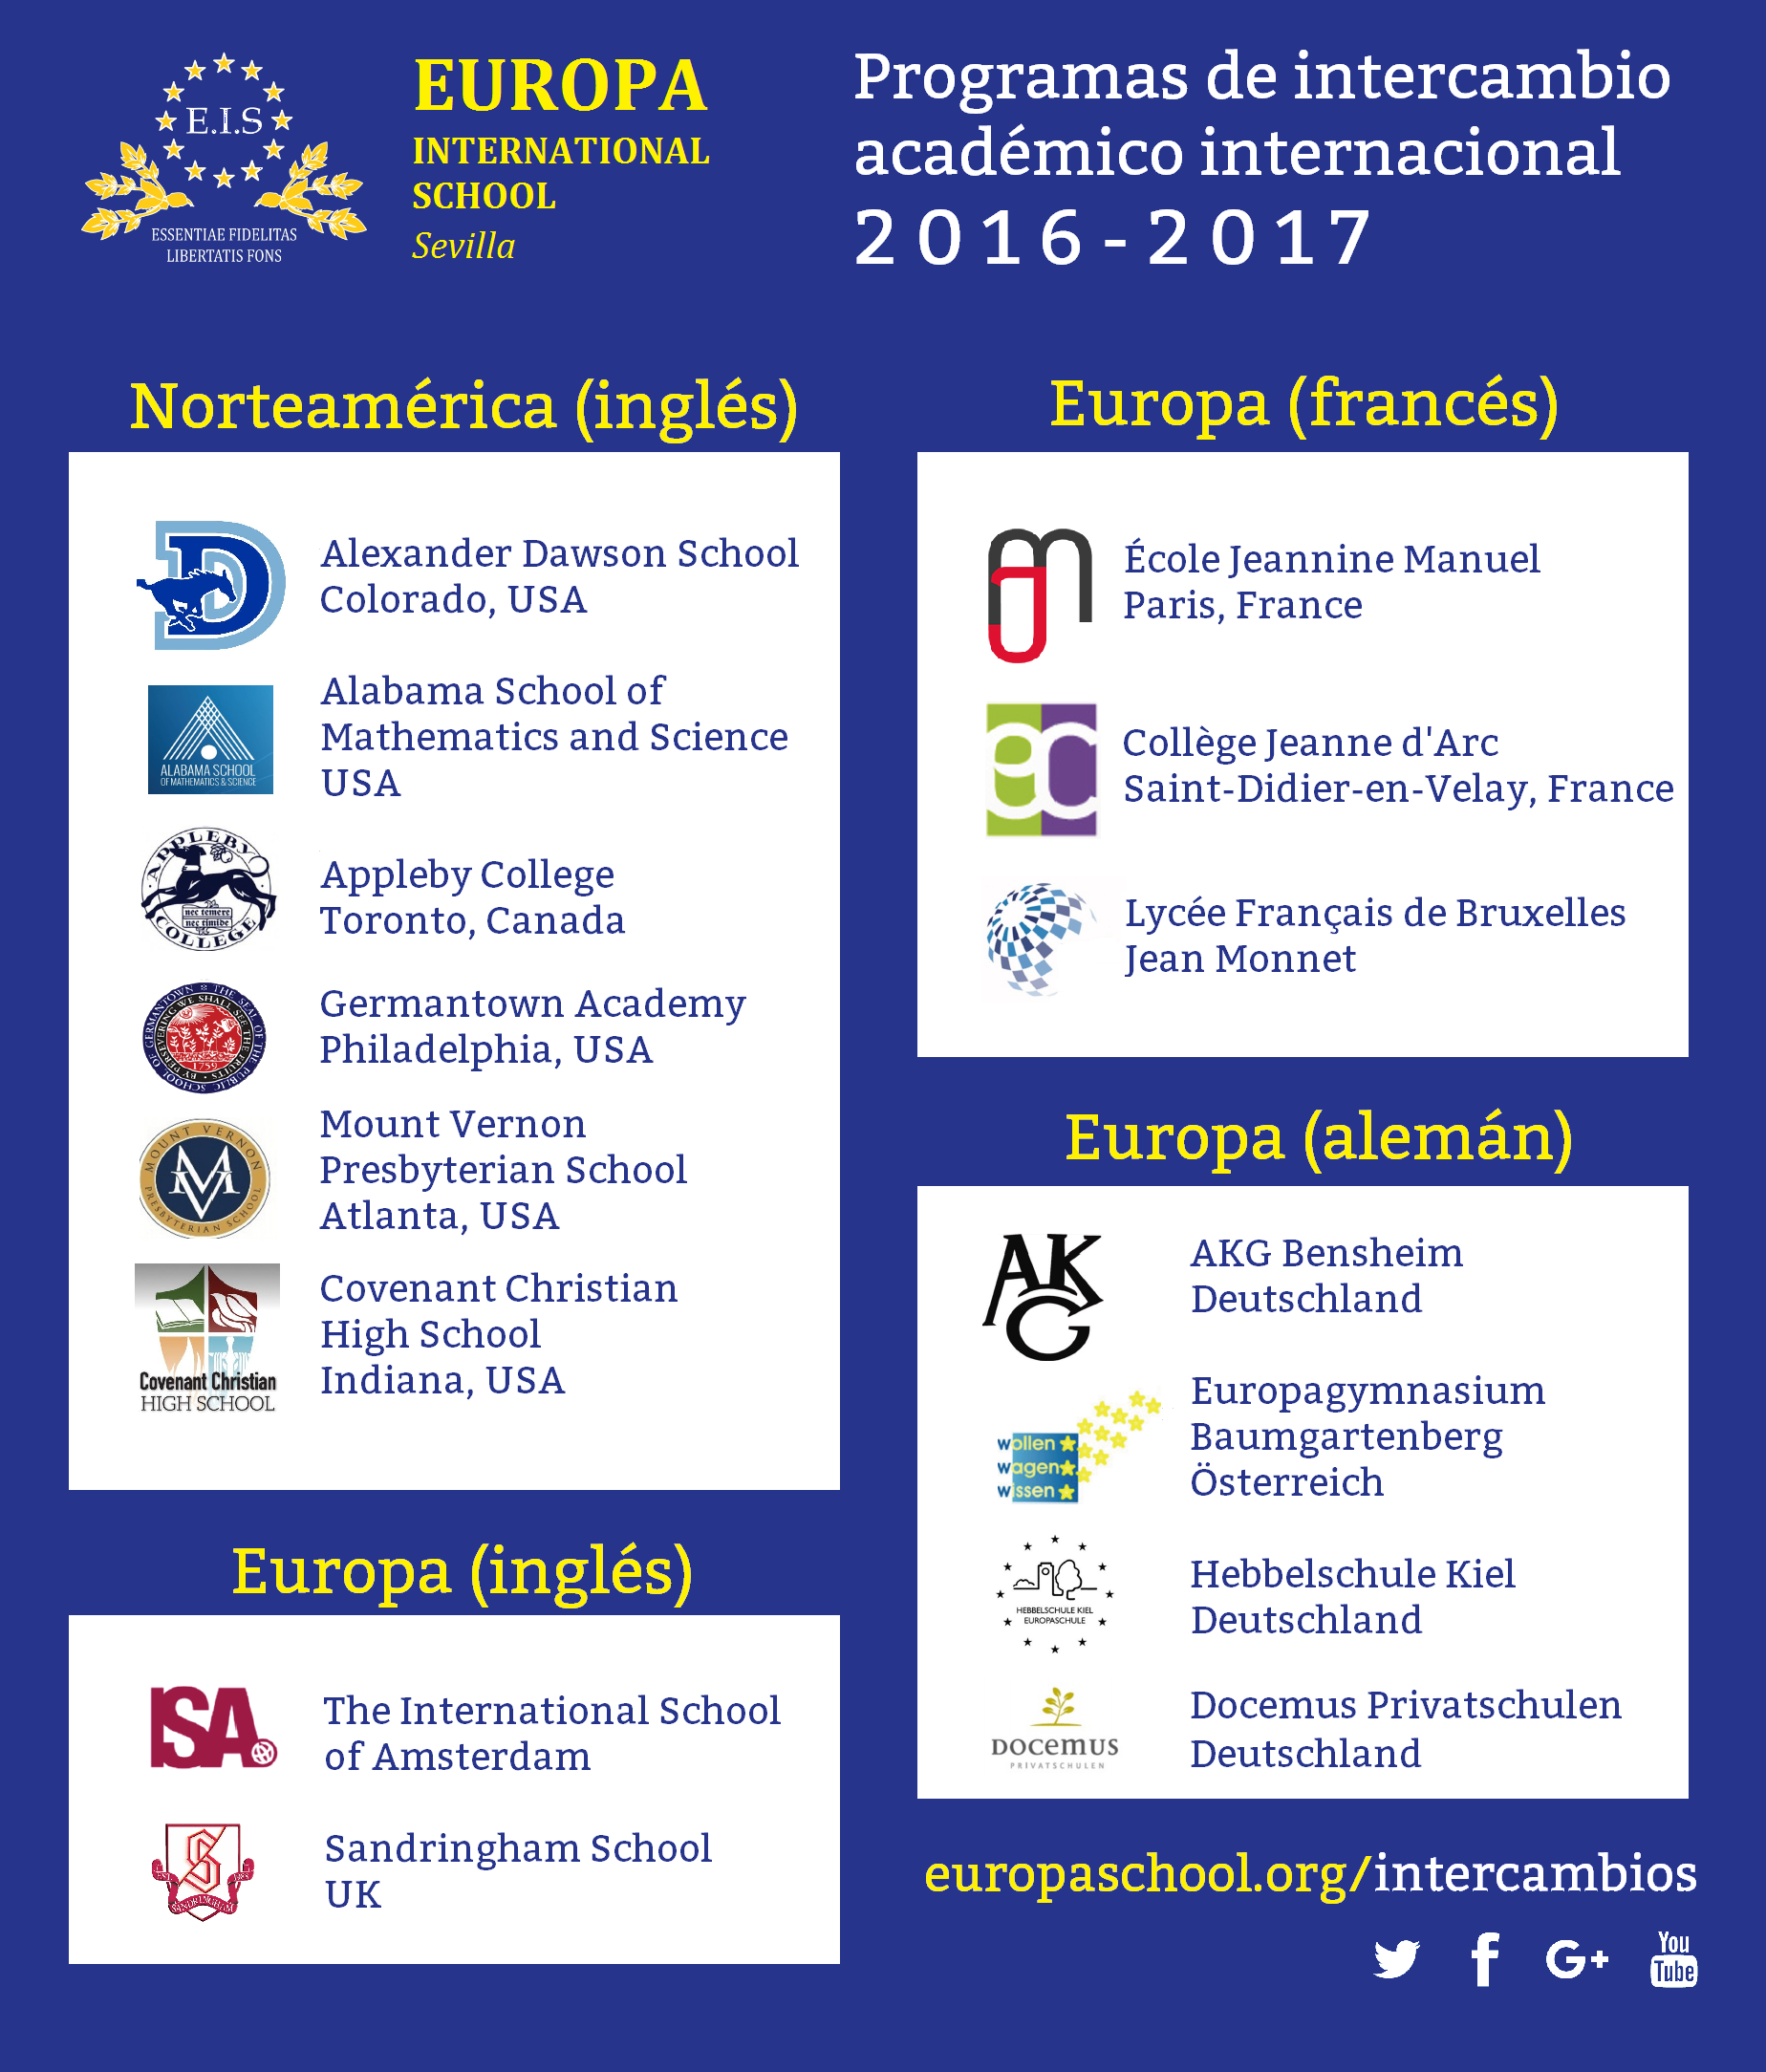 Intercambios internacionales 2016-2017